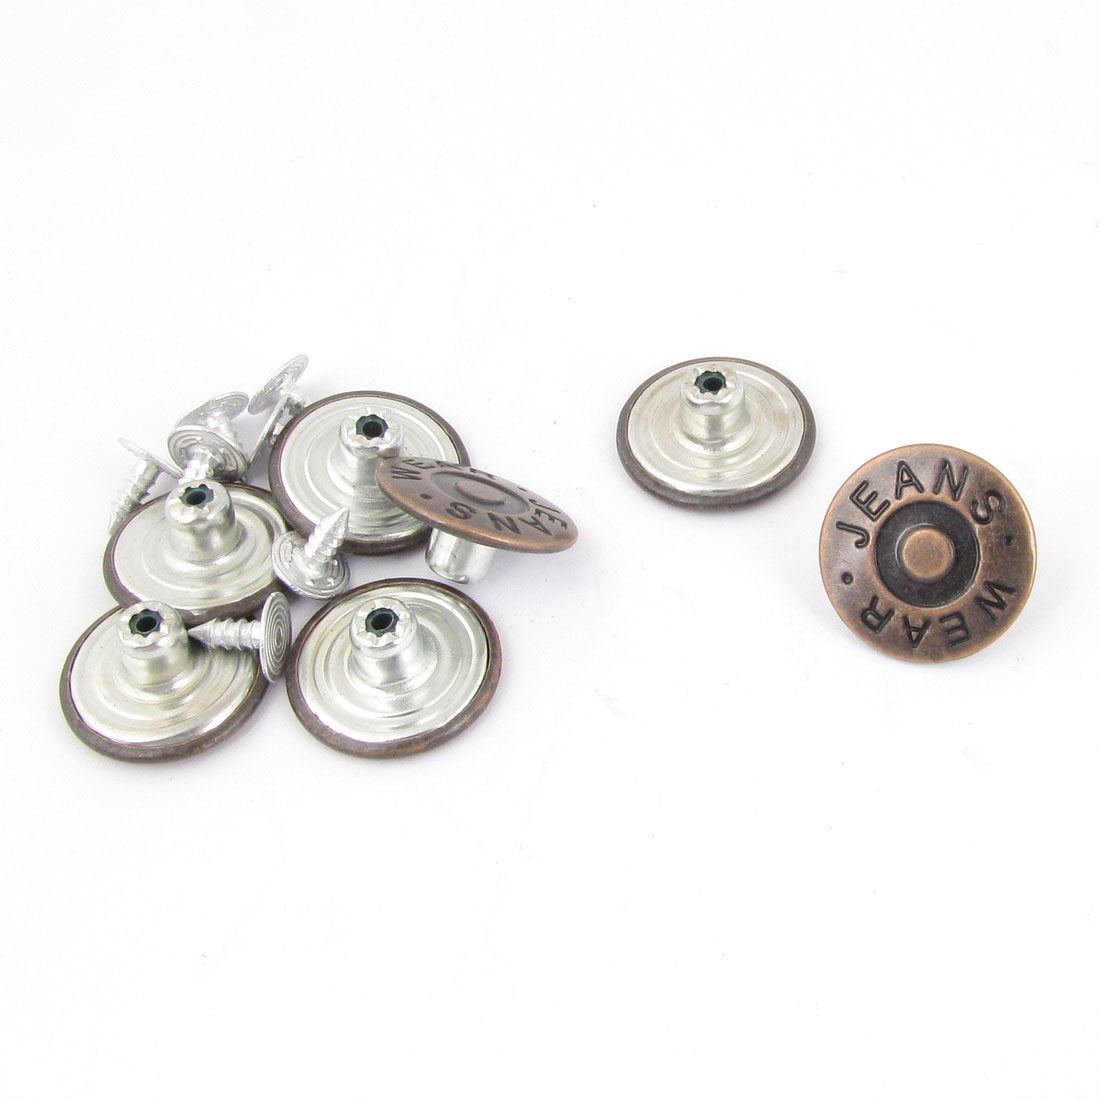 Repairing Parts Brown Metallic Carved Word Jeans Buttons 7 Pcs